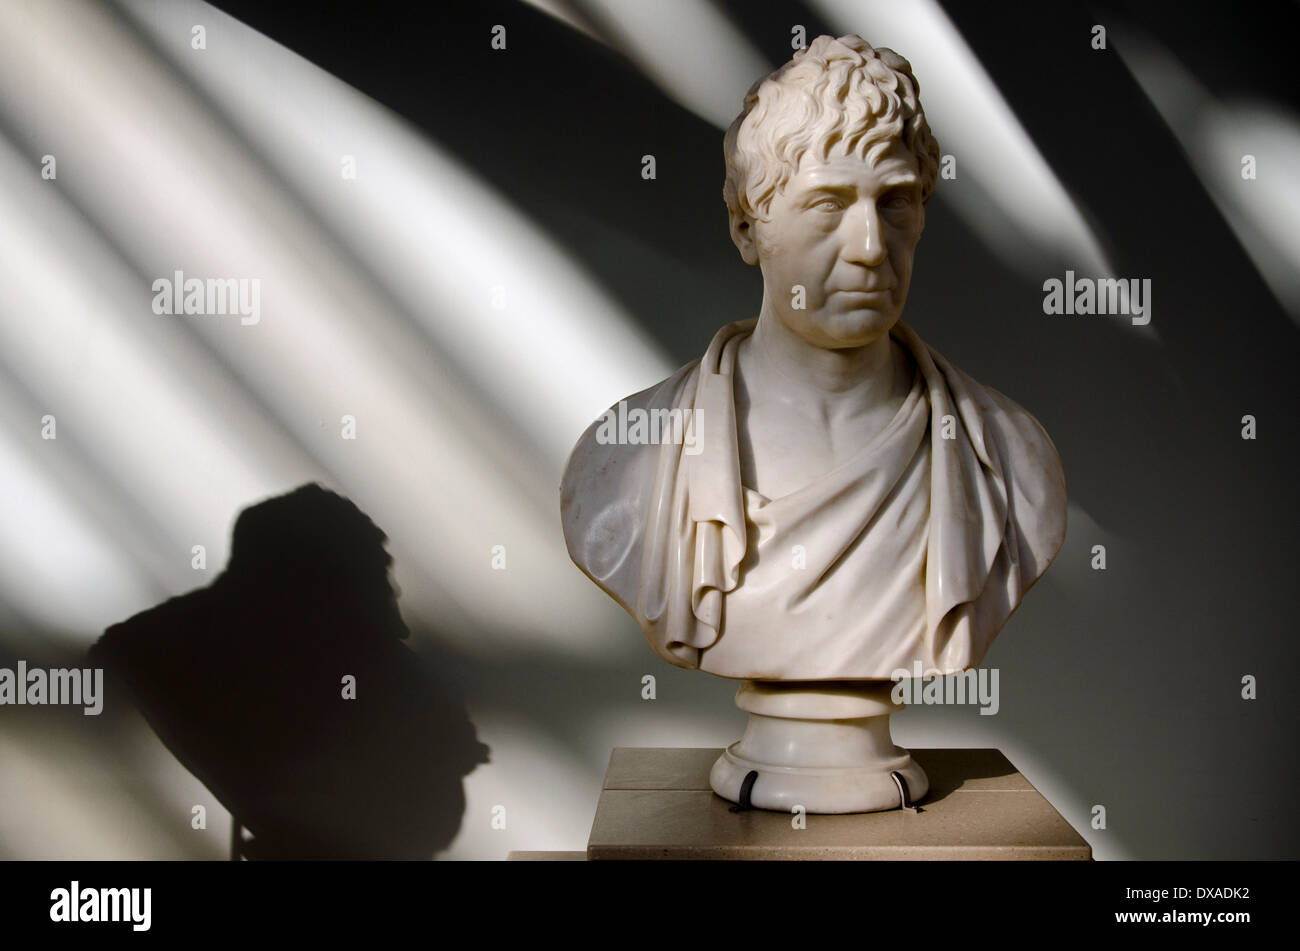 A bust of the Scottish politician and doctor Joseph Hume (1777-1855) who entered parliament as a Tory in 1812. - Stock Image